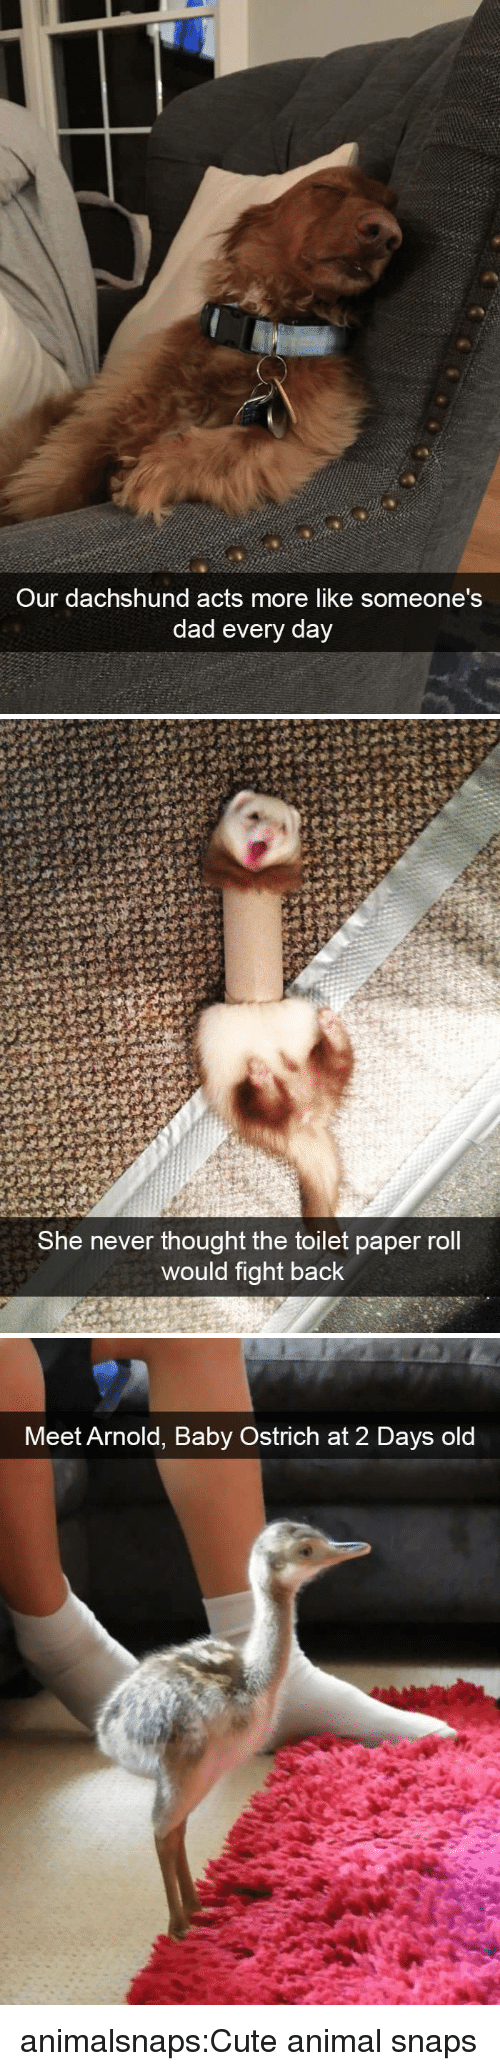 Cute, Dad, and Target: Our dachshund acts more like someone's  dad every day   She never thought the toilet paper roll  would fight back   Meet Arnold, Baby Ostrich at 2 Days old animalsnaps:Cute animal snaps